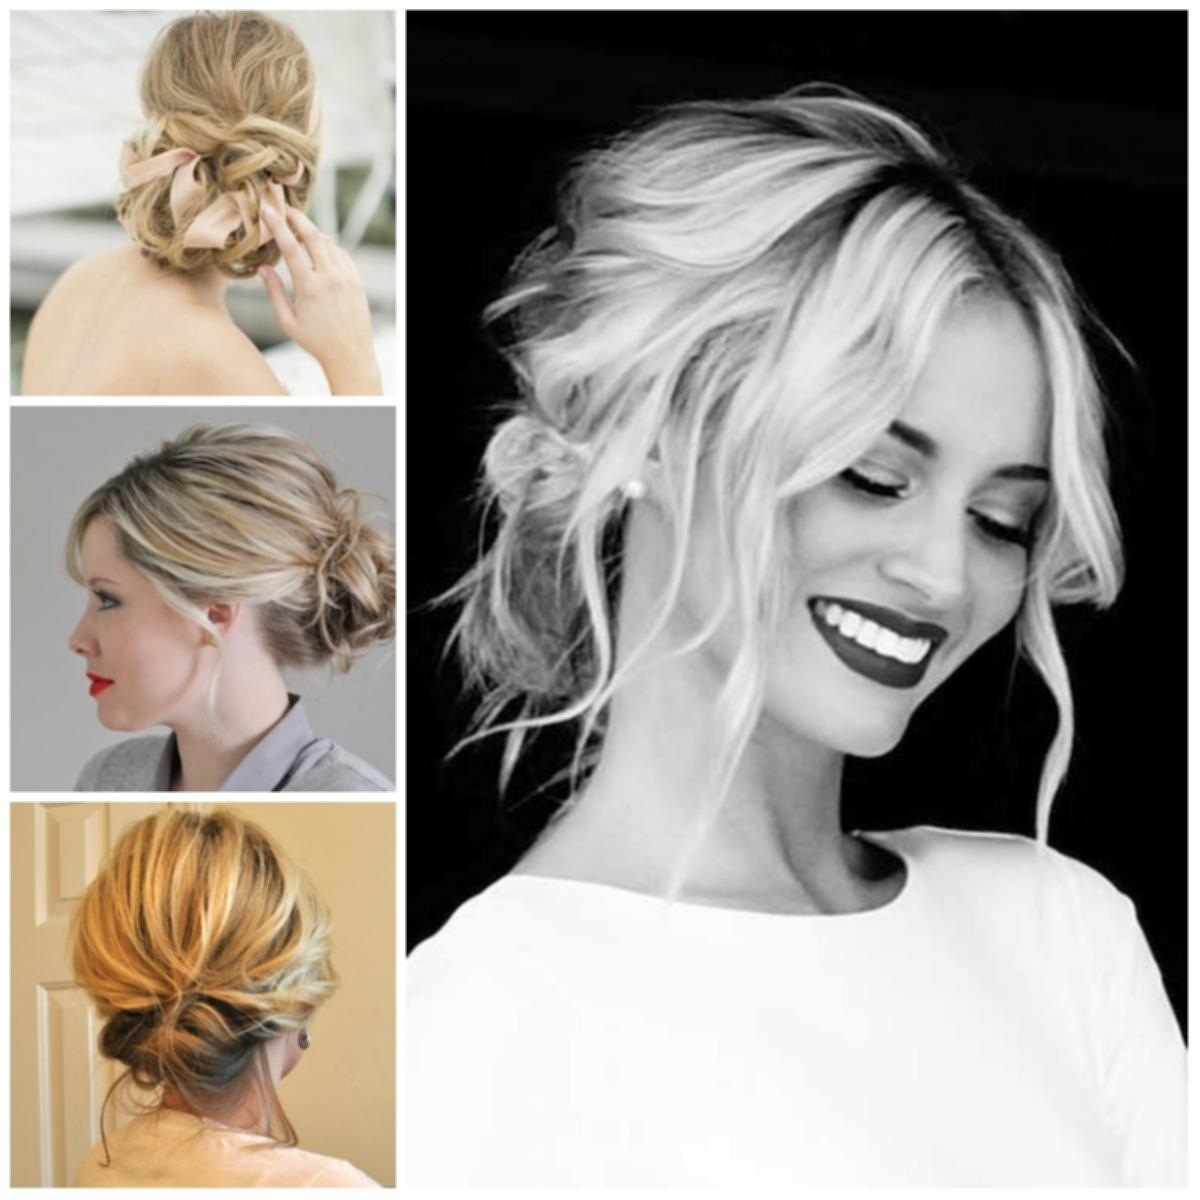 Updo Hairstyles For Medium Hair Best Updos For Medium Length Hair With Regard To Updo Hairstyles For Shoulder Length Hair (View 13 of 15)